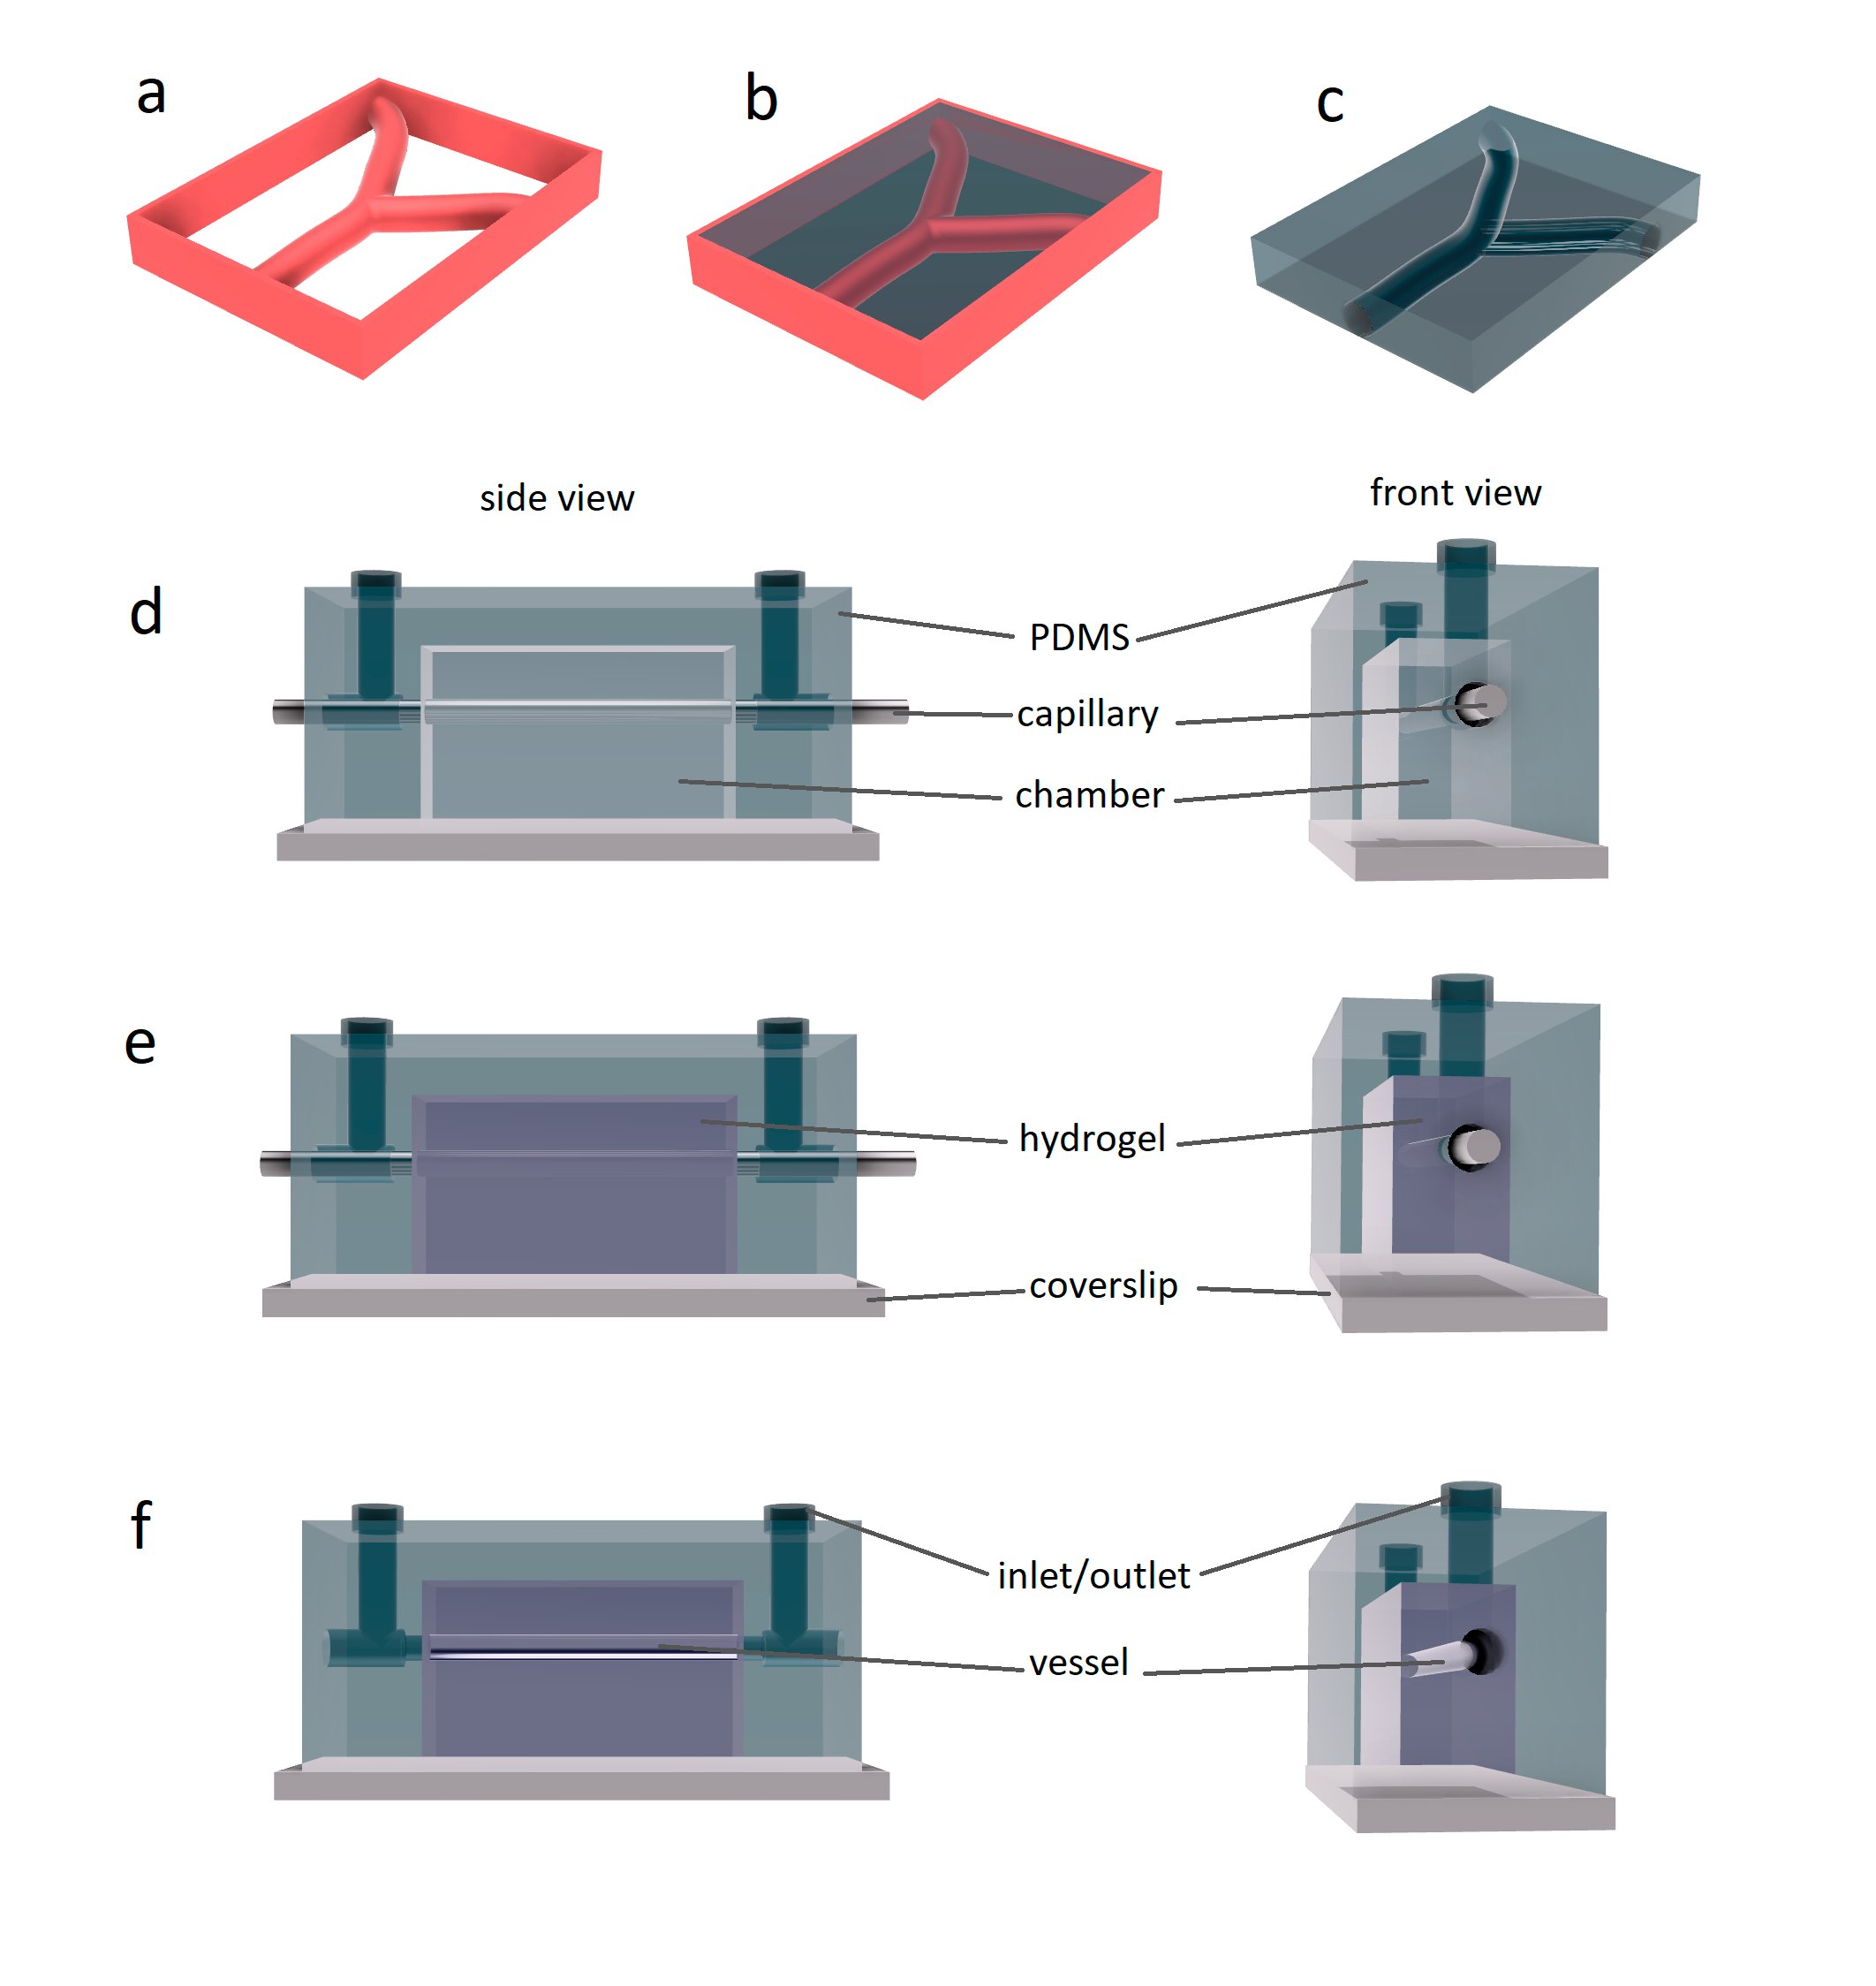 Various approaches for using hydrogels to fabricate artificial vessels. a) - c): bioprinting of vascularized hydrogels, schematic of the bioprinting process (adapted from [12]). a) bioprinting vessels and the wall; b) scaffold for GelMA; c) final GelMA block after curing with ultraviolet light and dissolving of the sacrificial layer (made from pluronic). d) - f): the tissue-engineered 3D microvessel, schematic of the construction process: d) PDMS mold, which contains input and output ports, is vacuum-sealed to the glass slide and serves as the shell. Cylindrical template rod (e.g. glass capillary) is positioned in the middle of the chamber into the special functional holes; e) PDMS mold is filled with hydrogel in a liquid state; f) after the gelation, the rod is physically removed by pulling it out from one side. After the removal of the template rod, the chamber is ready to use for blood/plasma perfusion or could be perfused for endothelial cell seeding and cultivation. Adapted from [9].